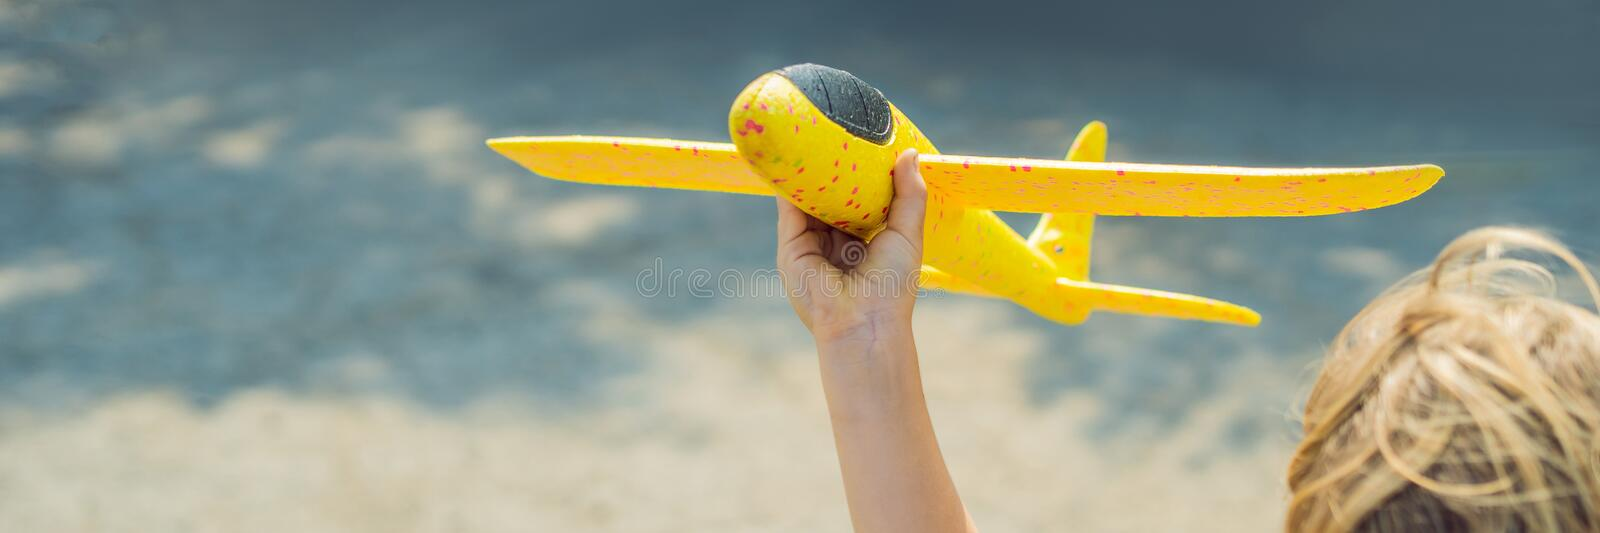 Happy kid playing with toy airplane against old runway background. Traveling with kids concept BANNER, LONG FORMAT royalty free stock photography